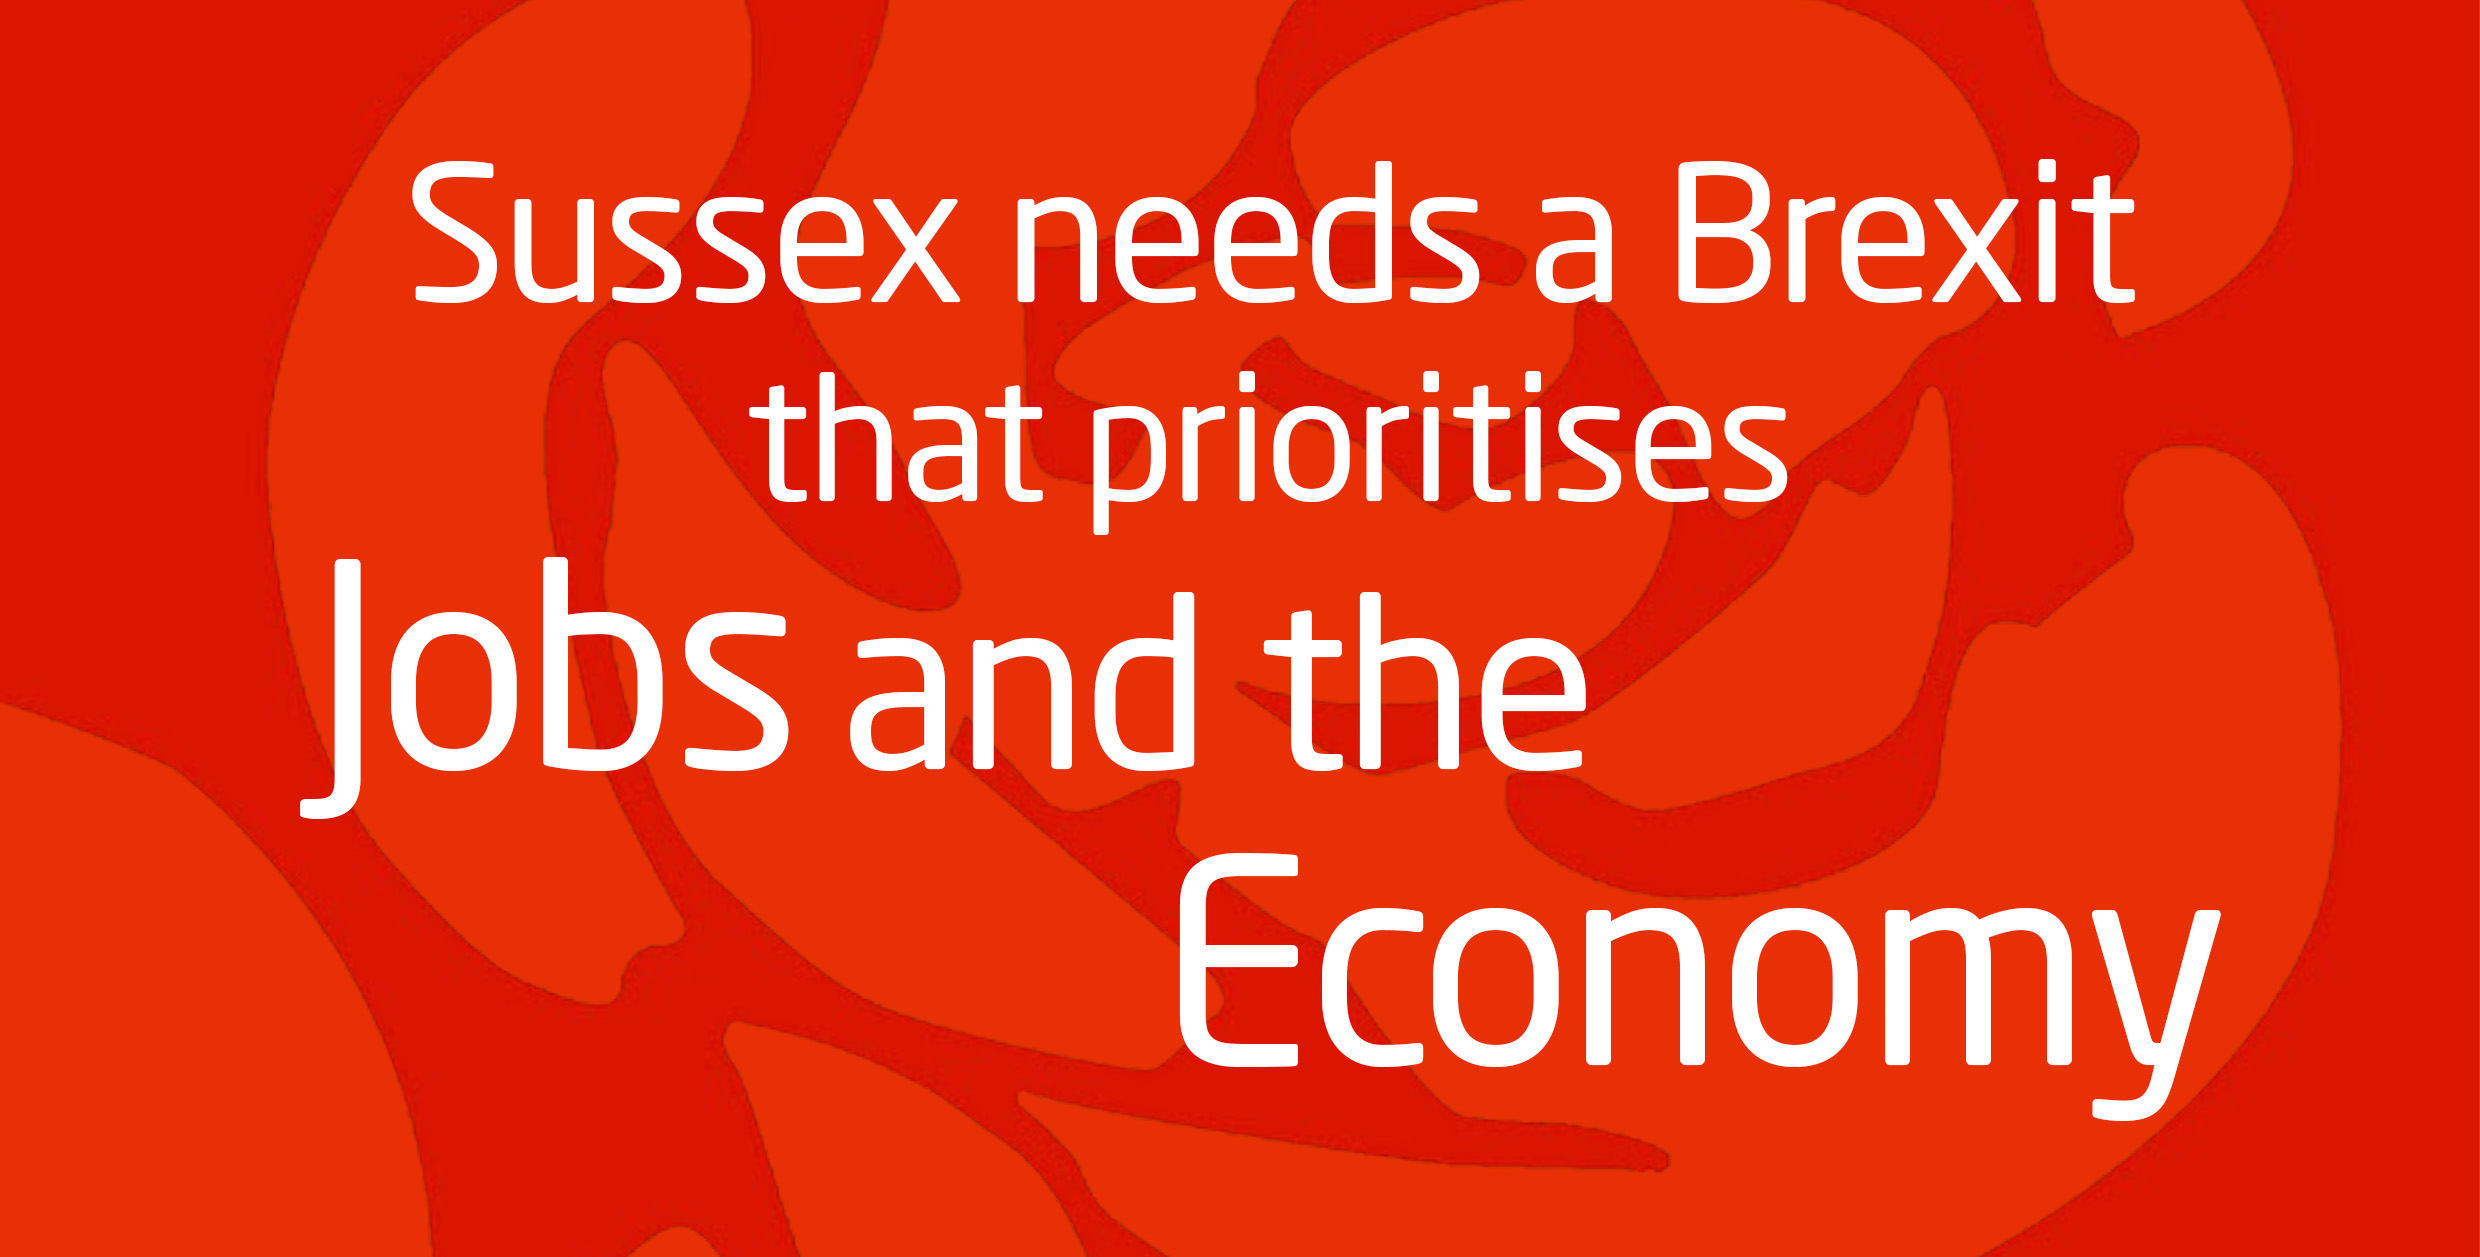 Sussex jobs and economy must be protected